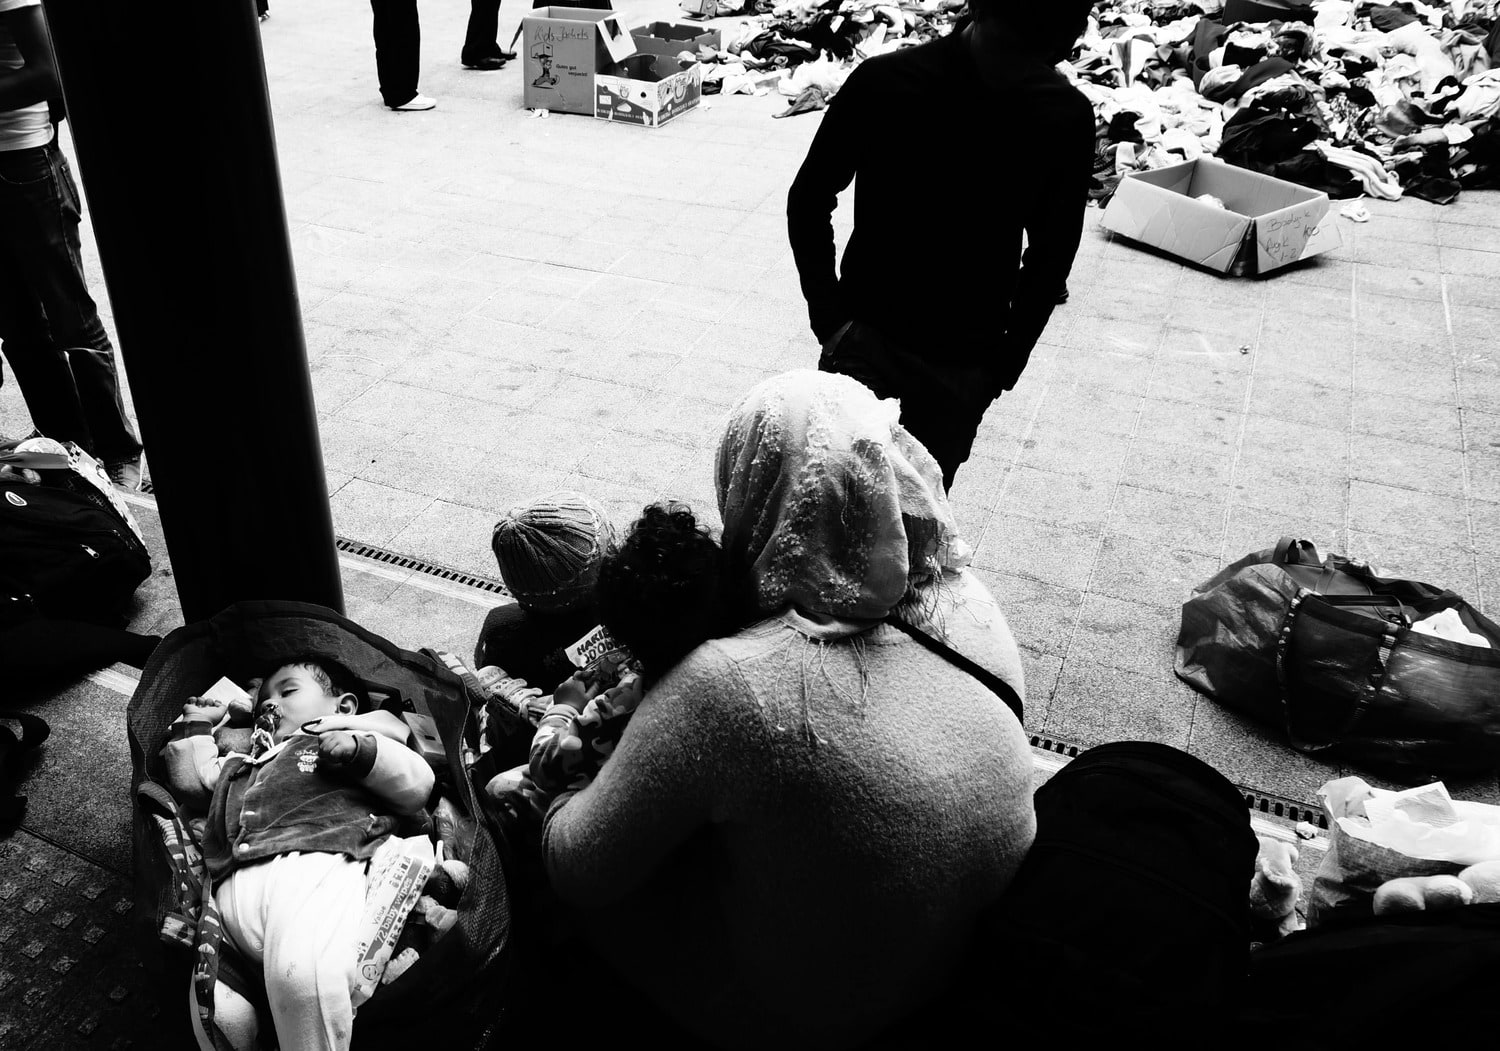 europe, réfugiés, refugees, tour d'europe, travel, black and white, photographs, street photography